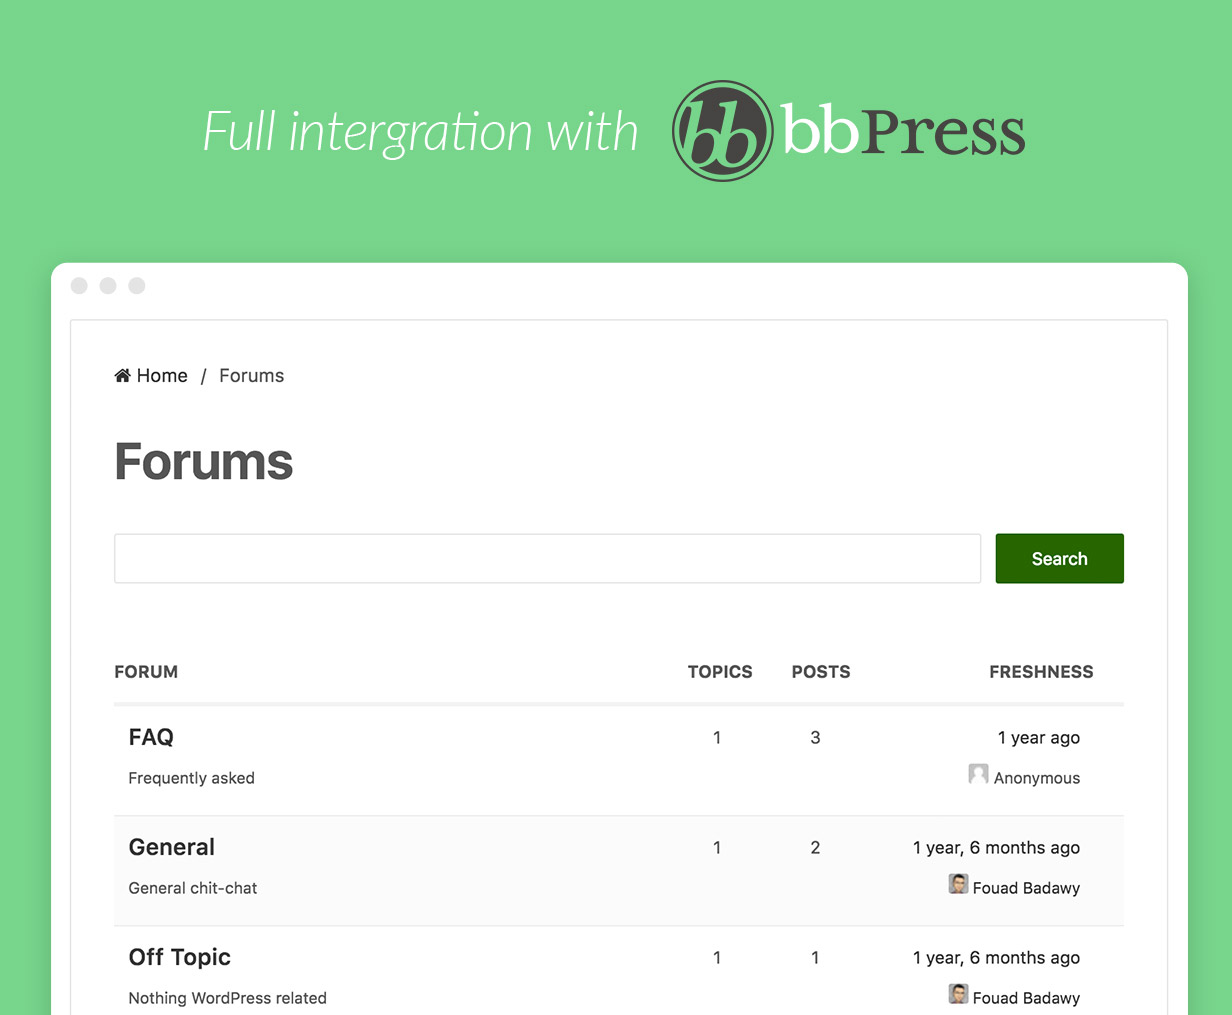 bbPress Integration